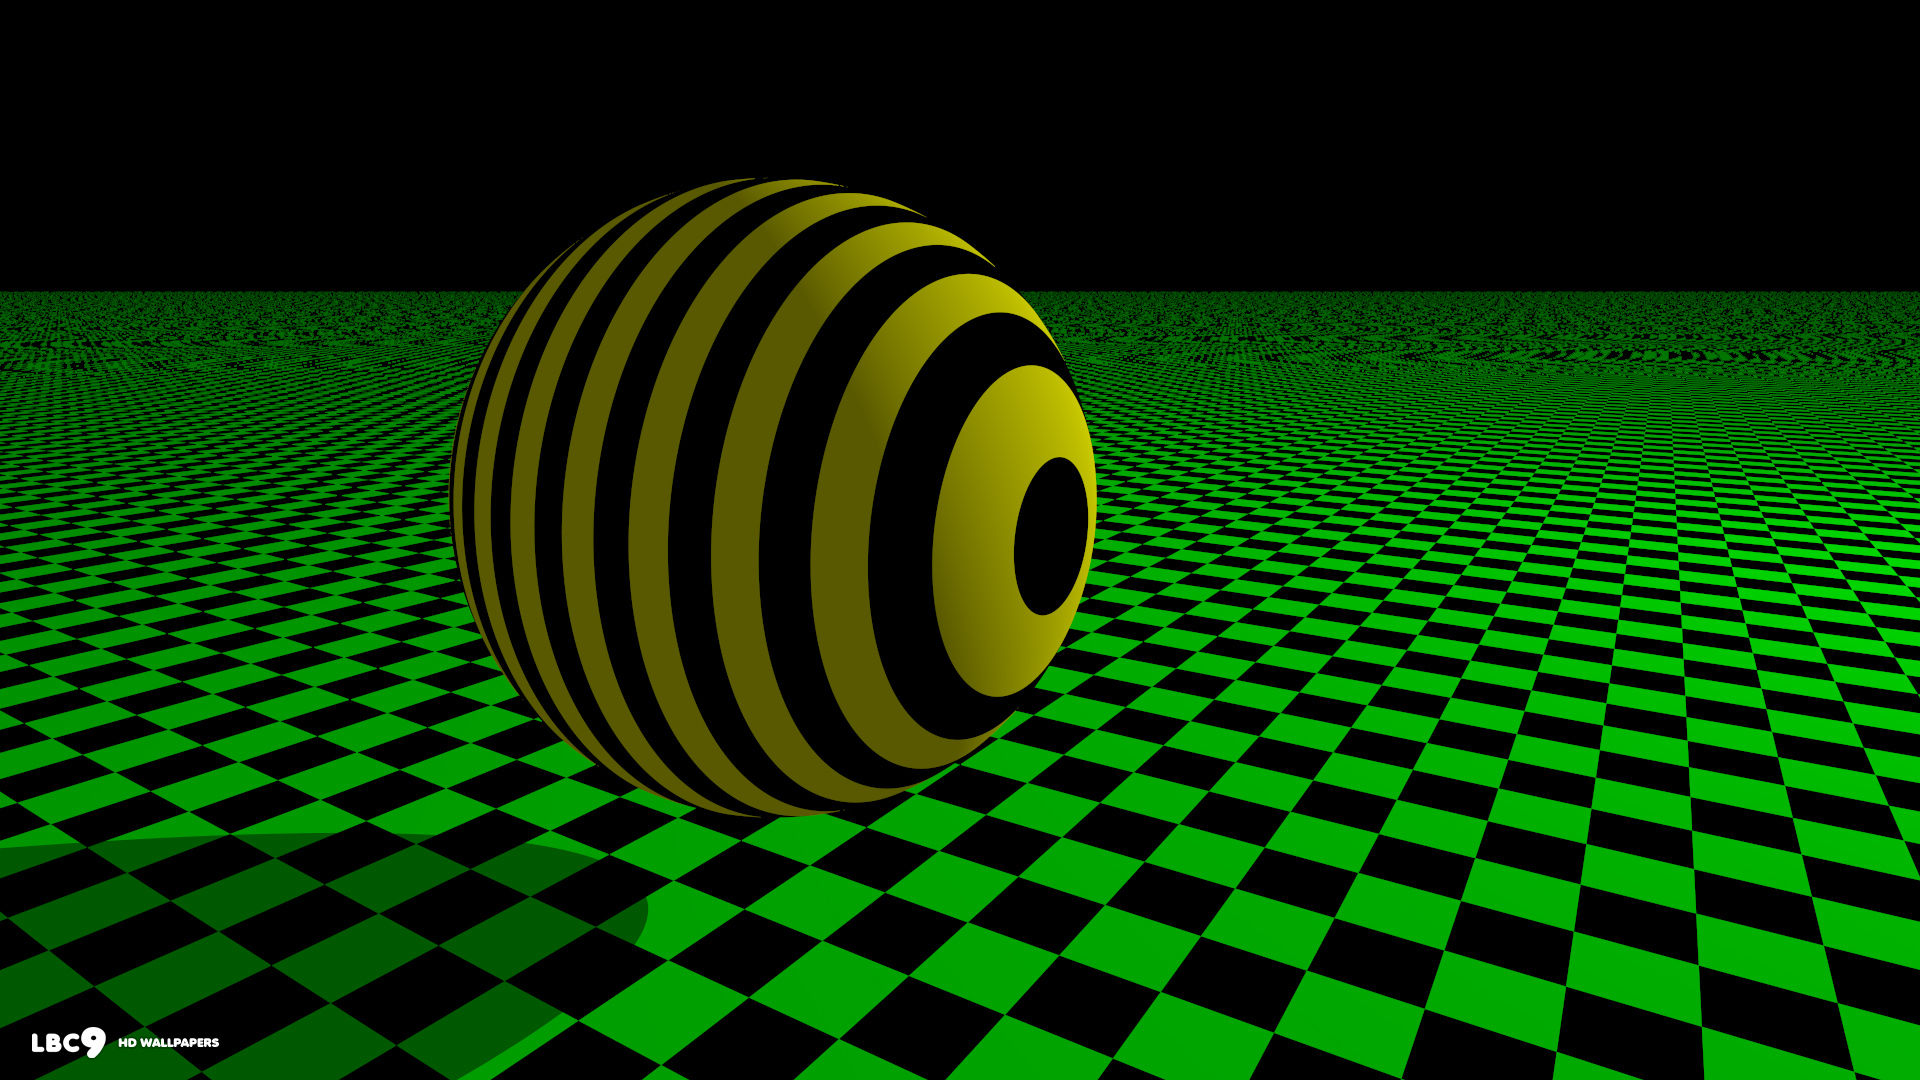 Black Yellow Sphere Green Checkerboard Palace Of Versailles 1441956 Hd Wallpaper Backgrounds Download